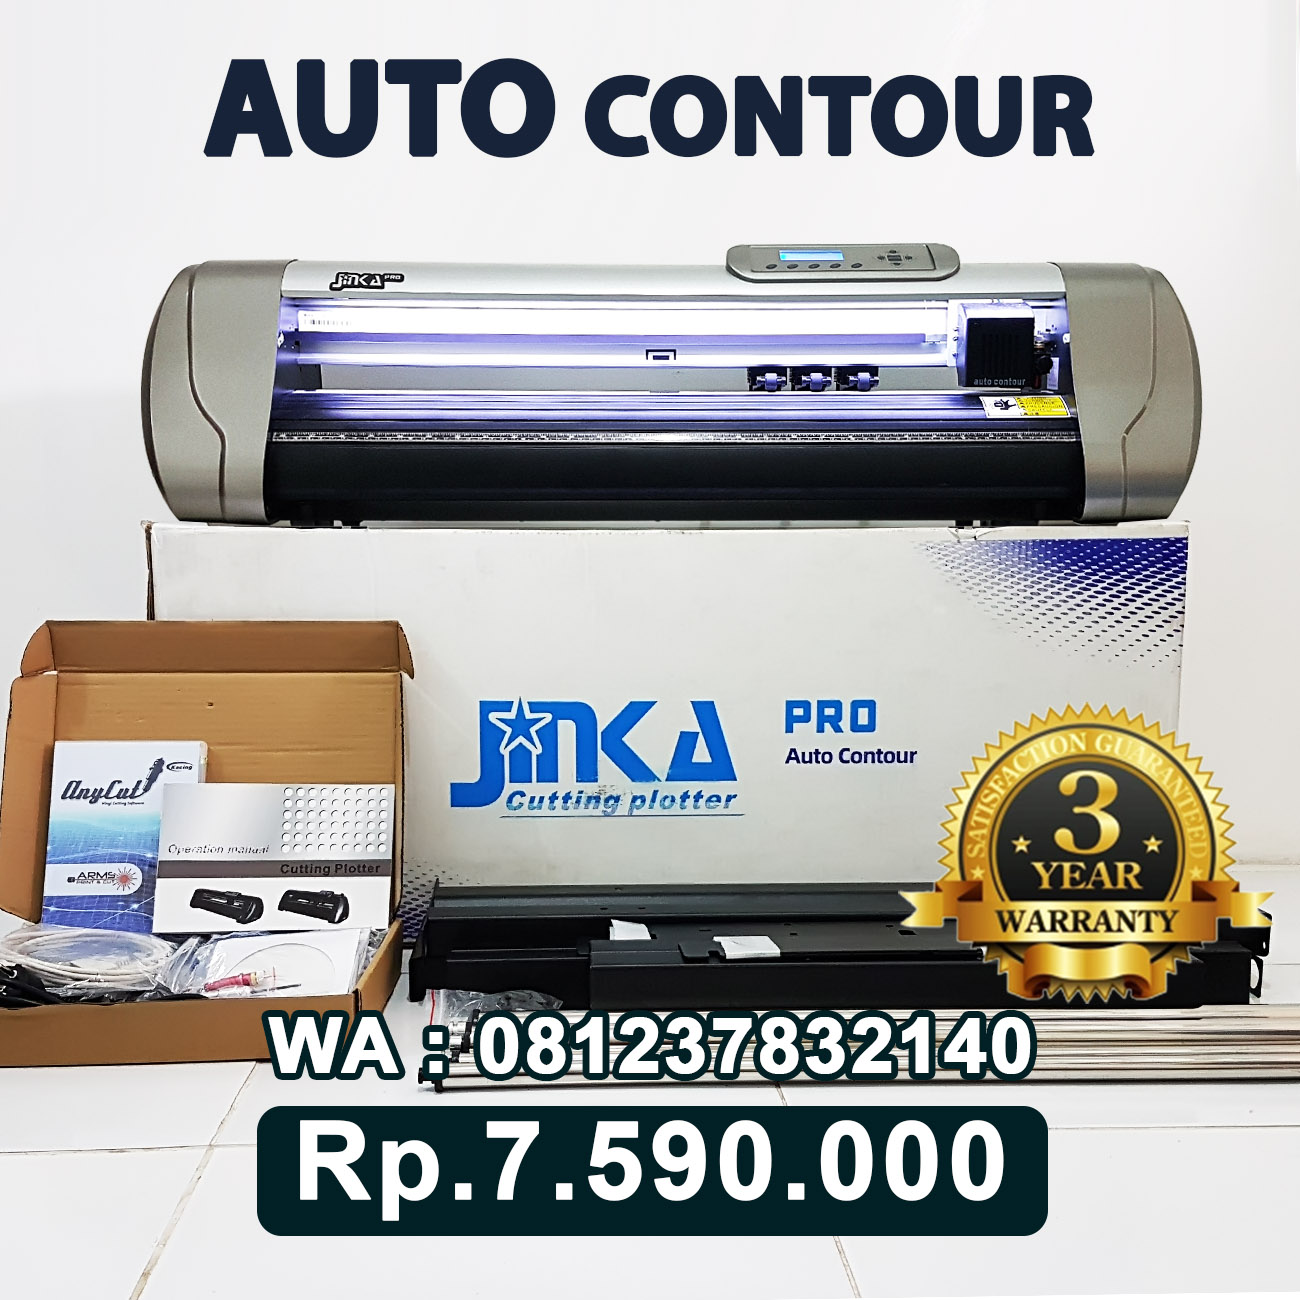 JUAL MESIN CUTTING STICKER JINKA PRO 722 LED AUTO CONTOUR CUT Bali